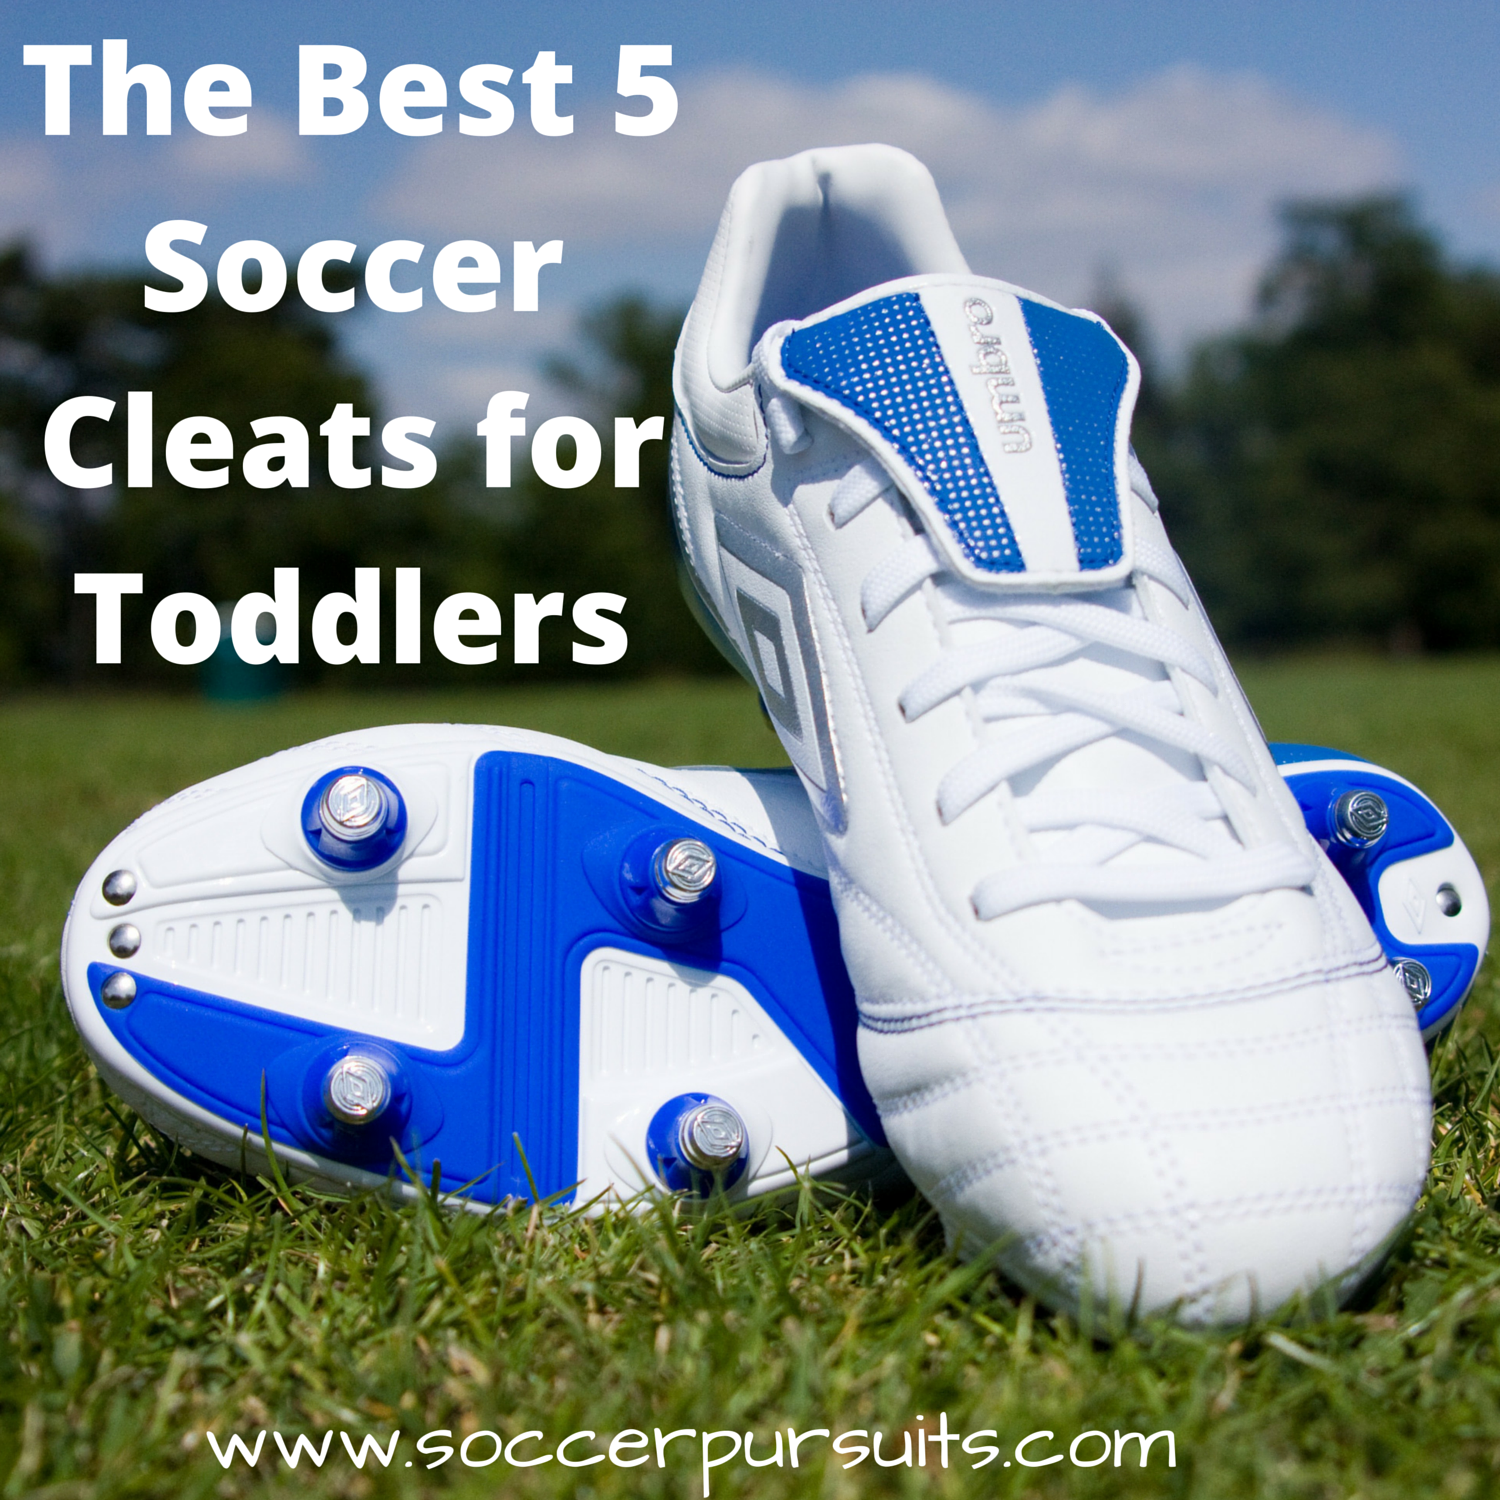 17 Best ideas about Toddler Soccer Cleats on Pinterest | Kids ...